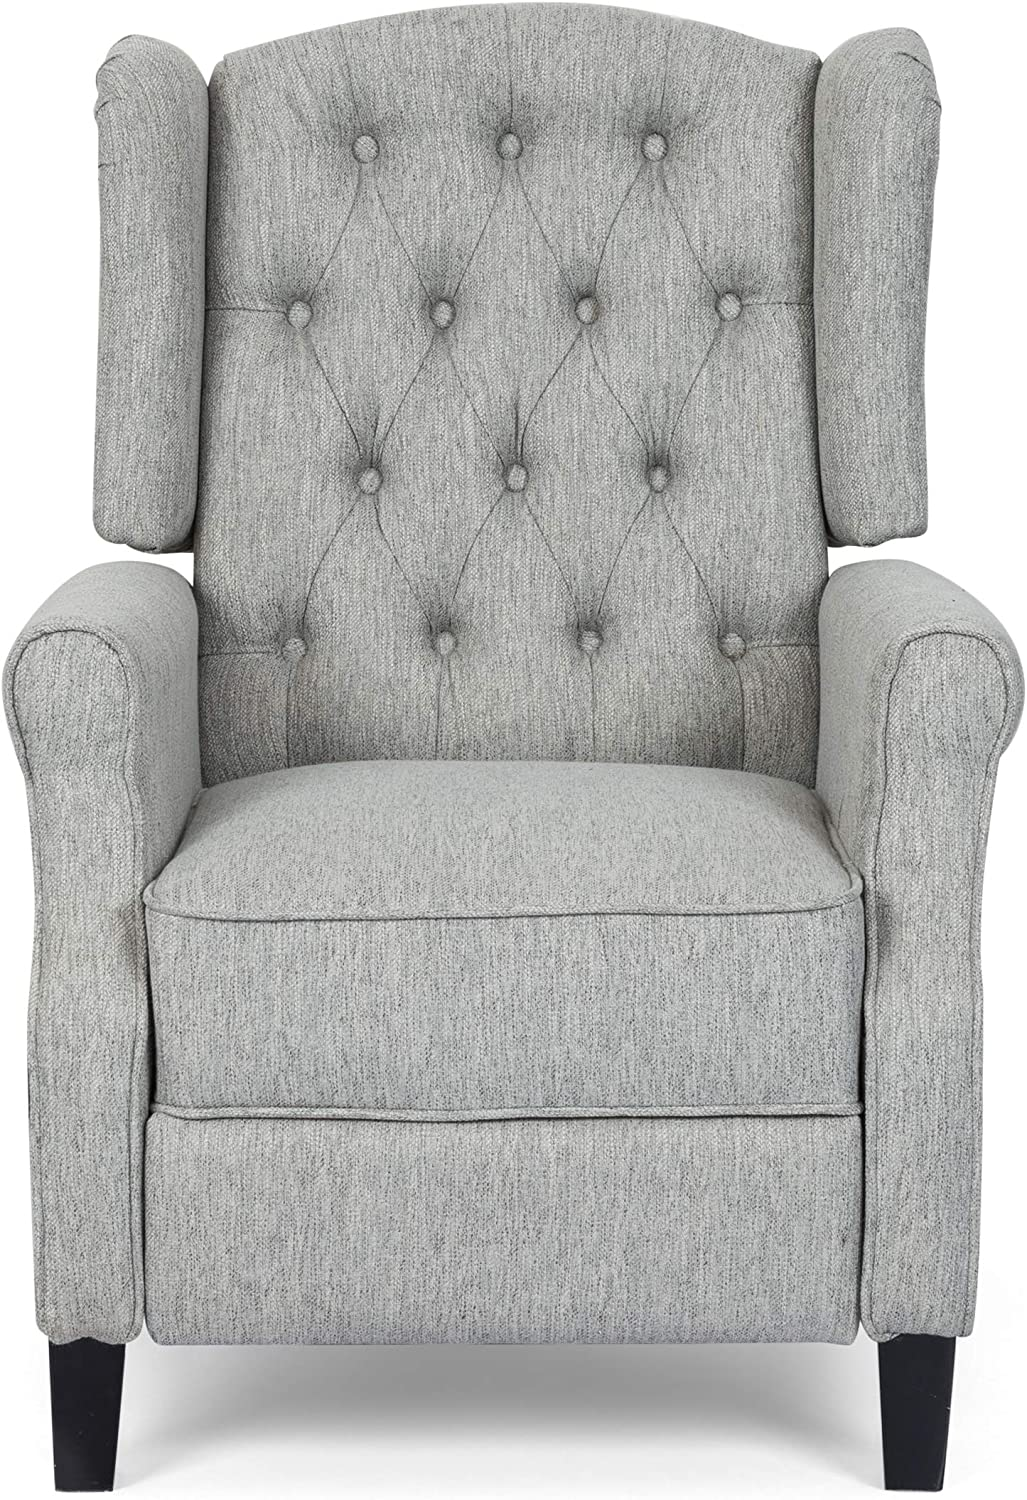 Christopher Knight Home Sarah Fabric Recliner, Light Gray, Dark Brown